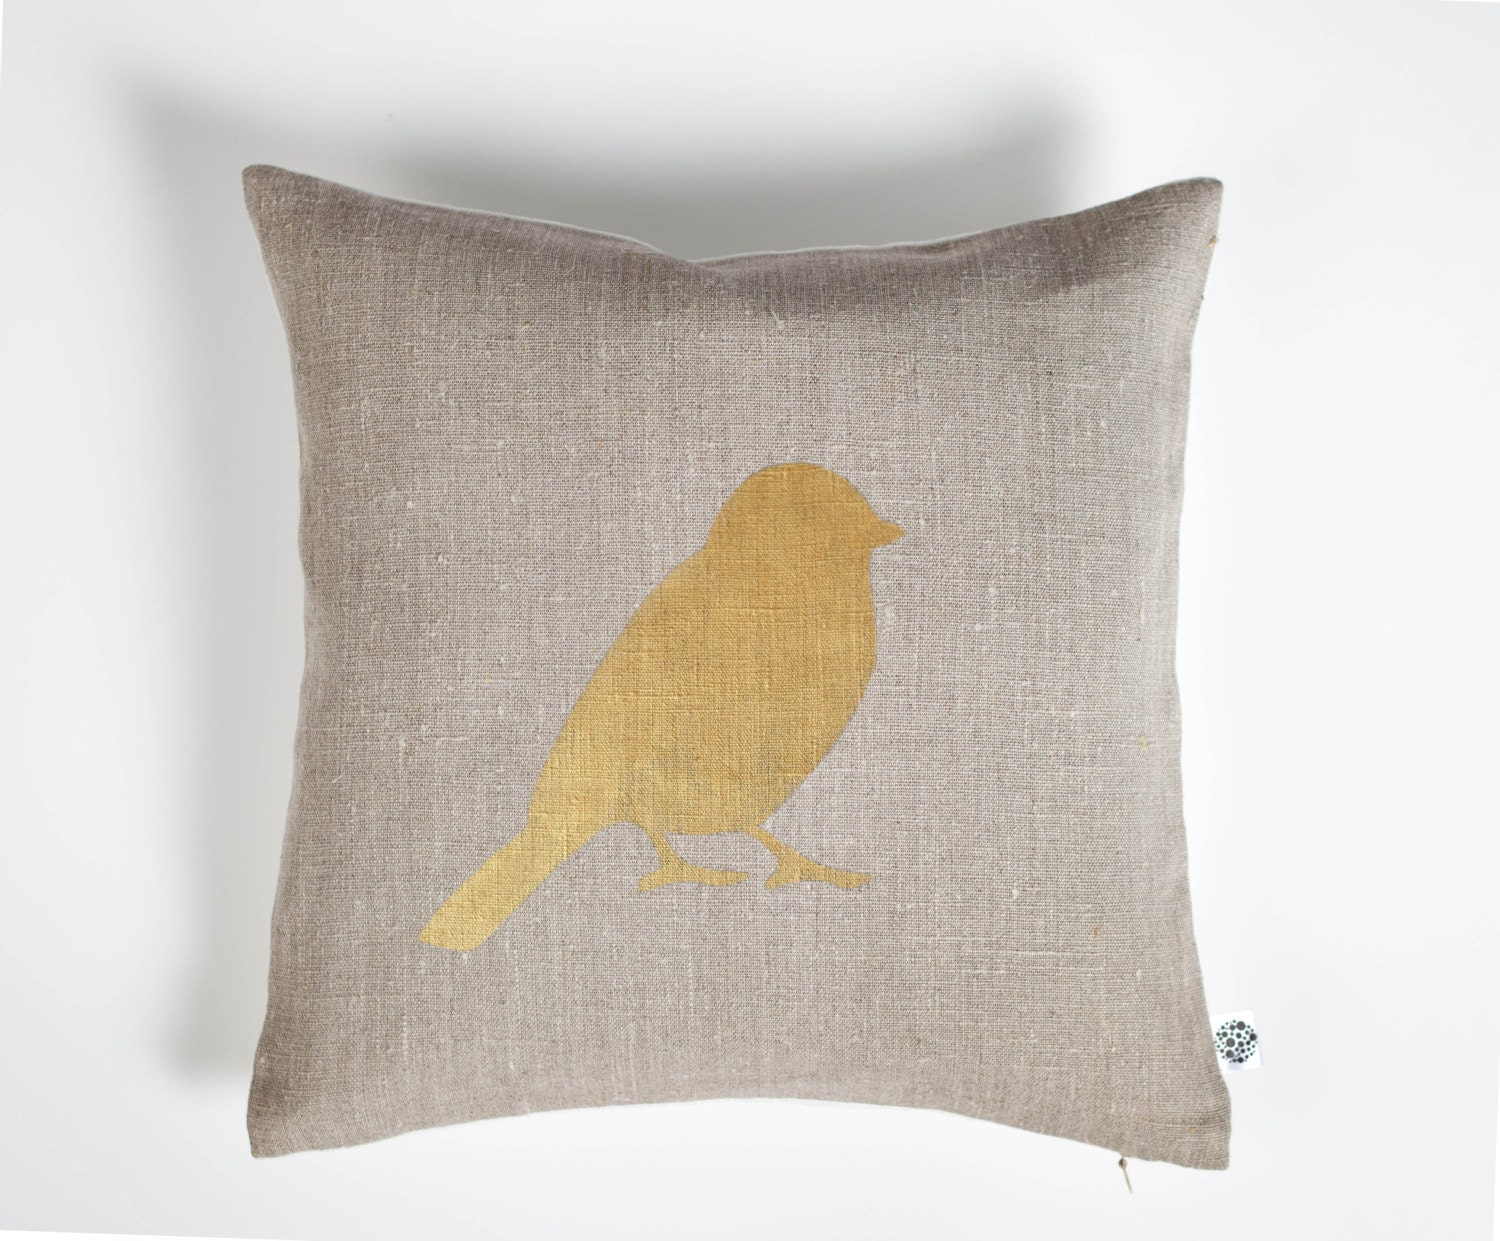 Throw Pillows With Birds : Bird throw pillow decorative bird pillow cover throw